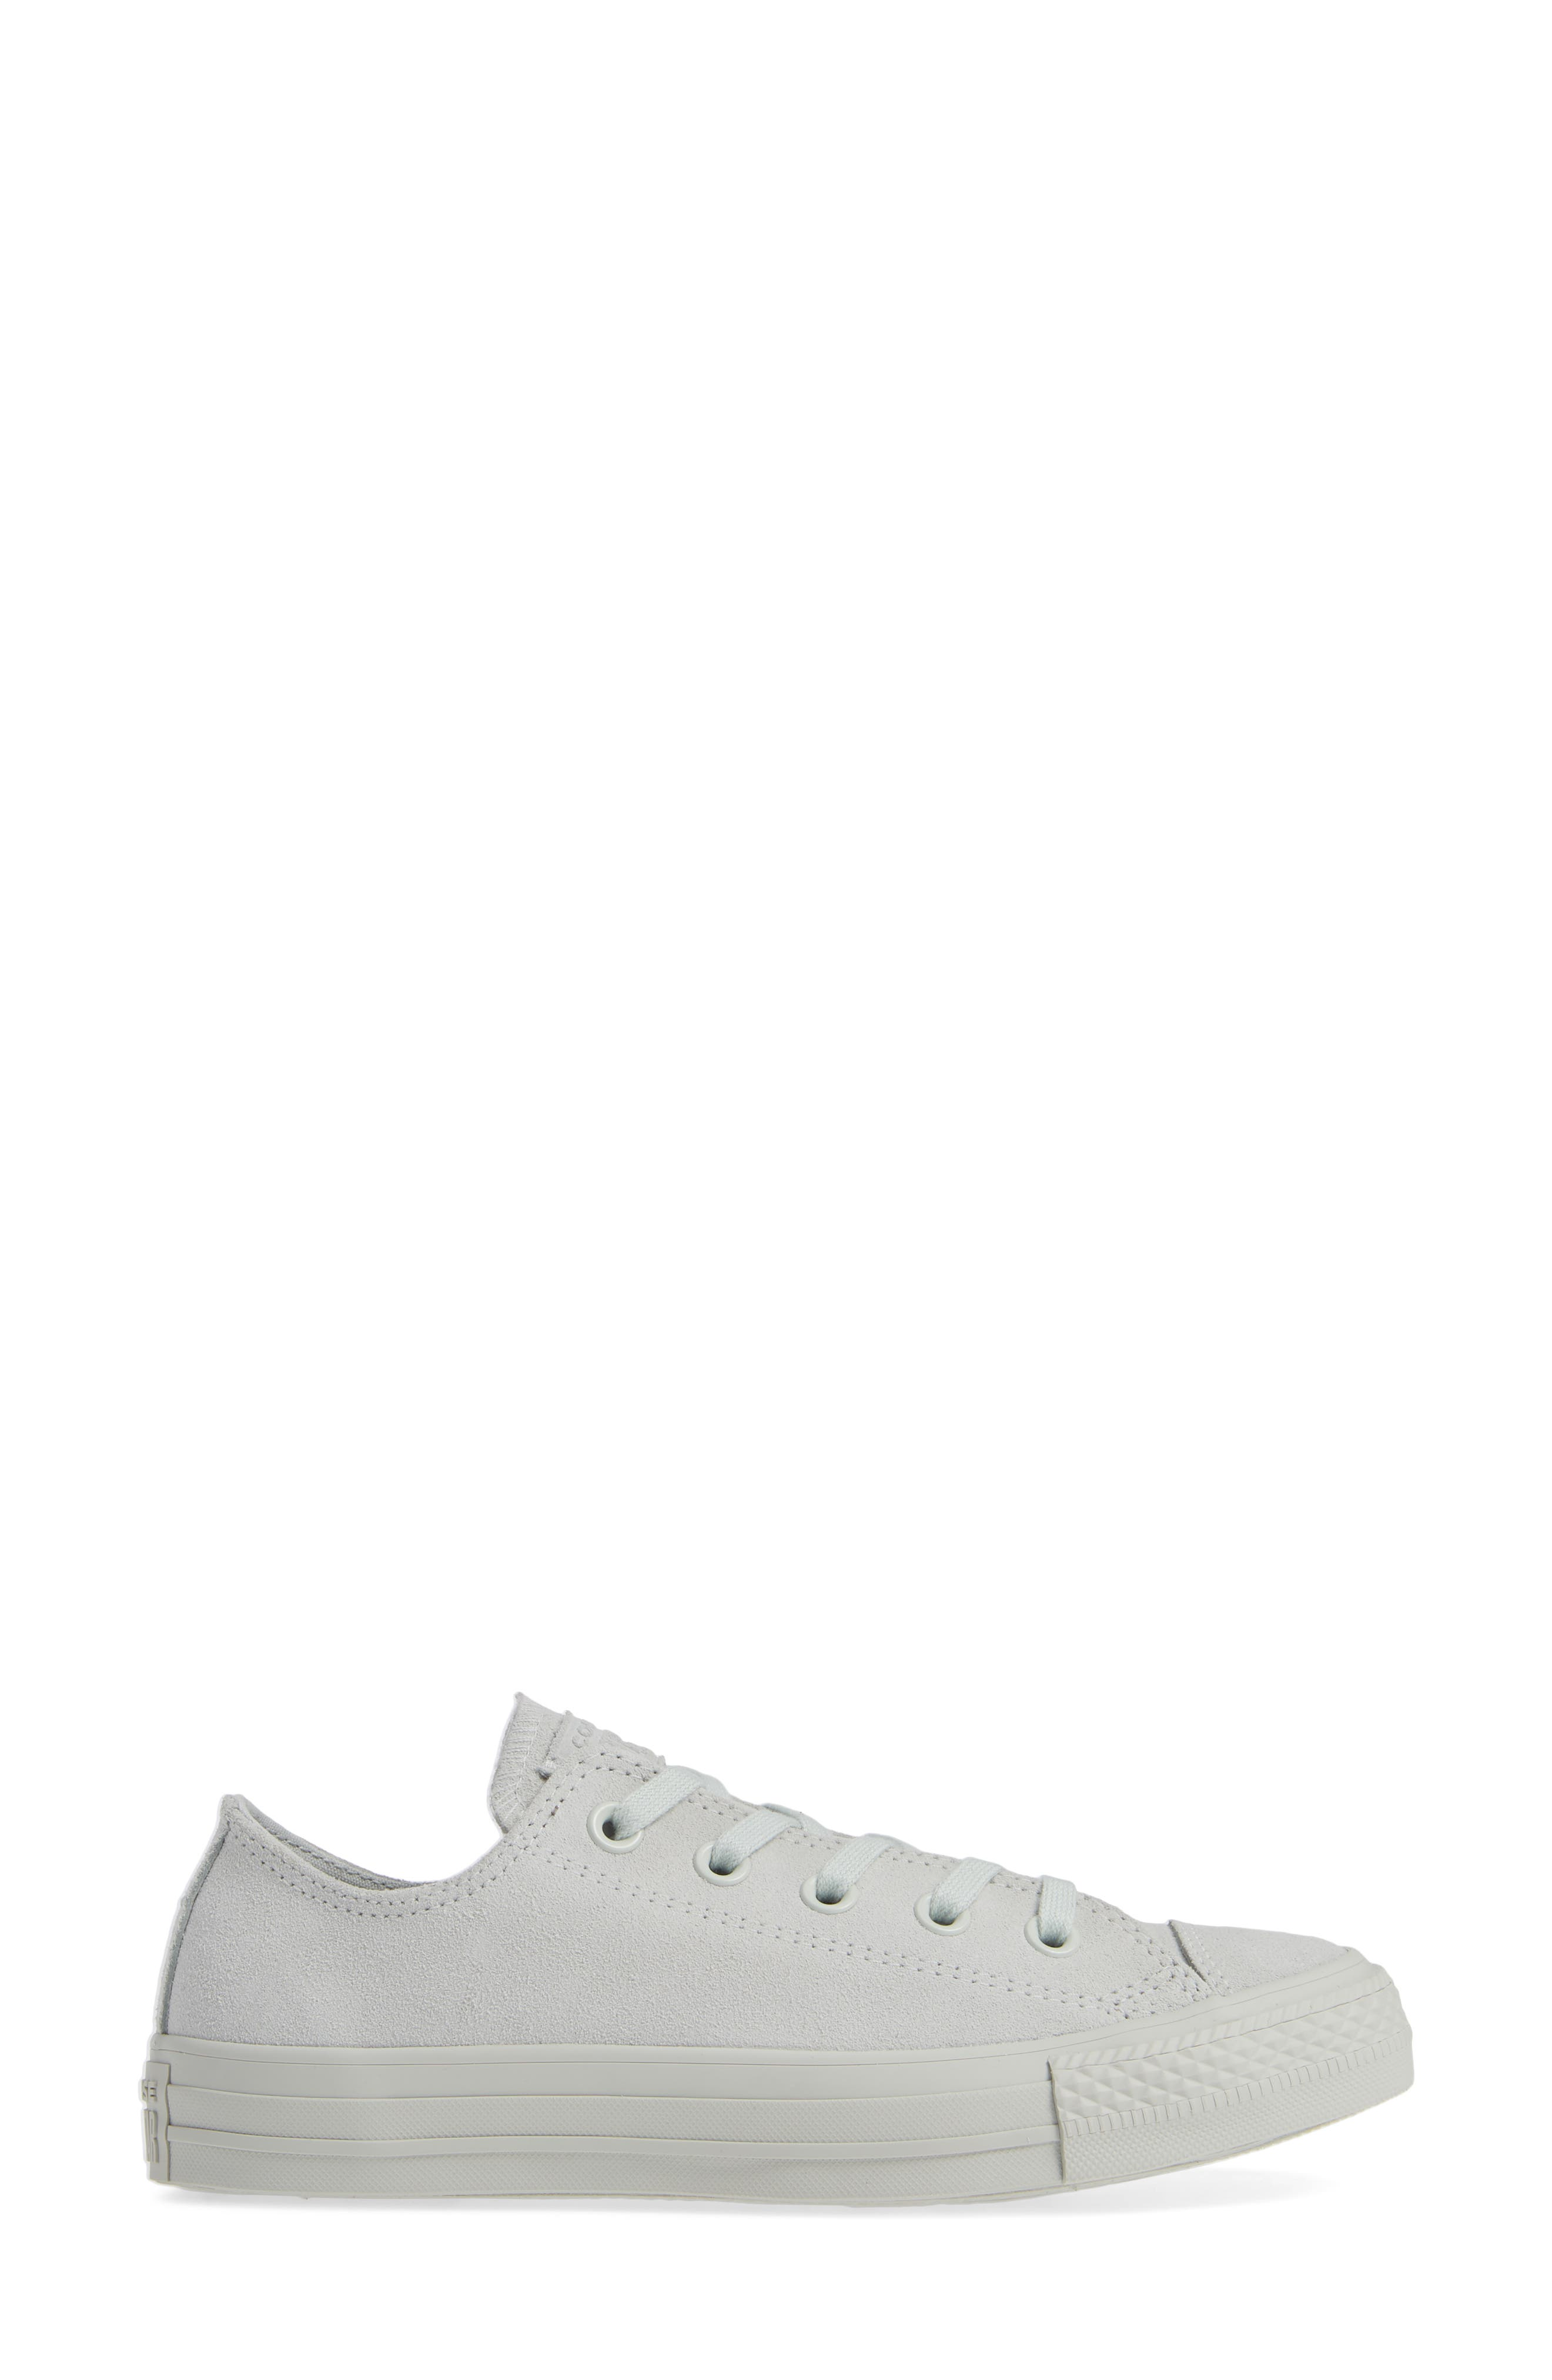 Chuck Taylor<sup>®</sup> All Star<sup>®</sup> Ox Sneaker,                             Alternate thumbnail 3, color,                             LIGHT SILVER SUEDE